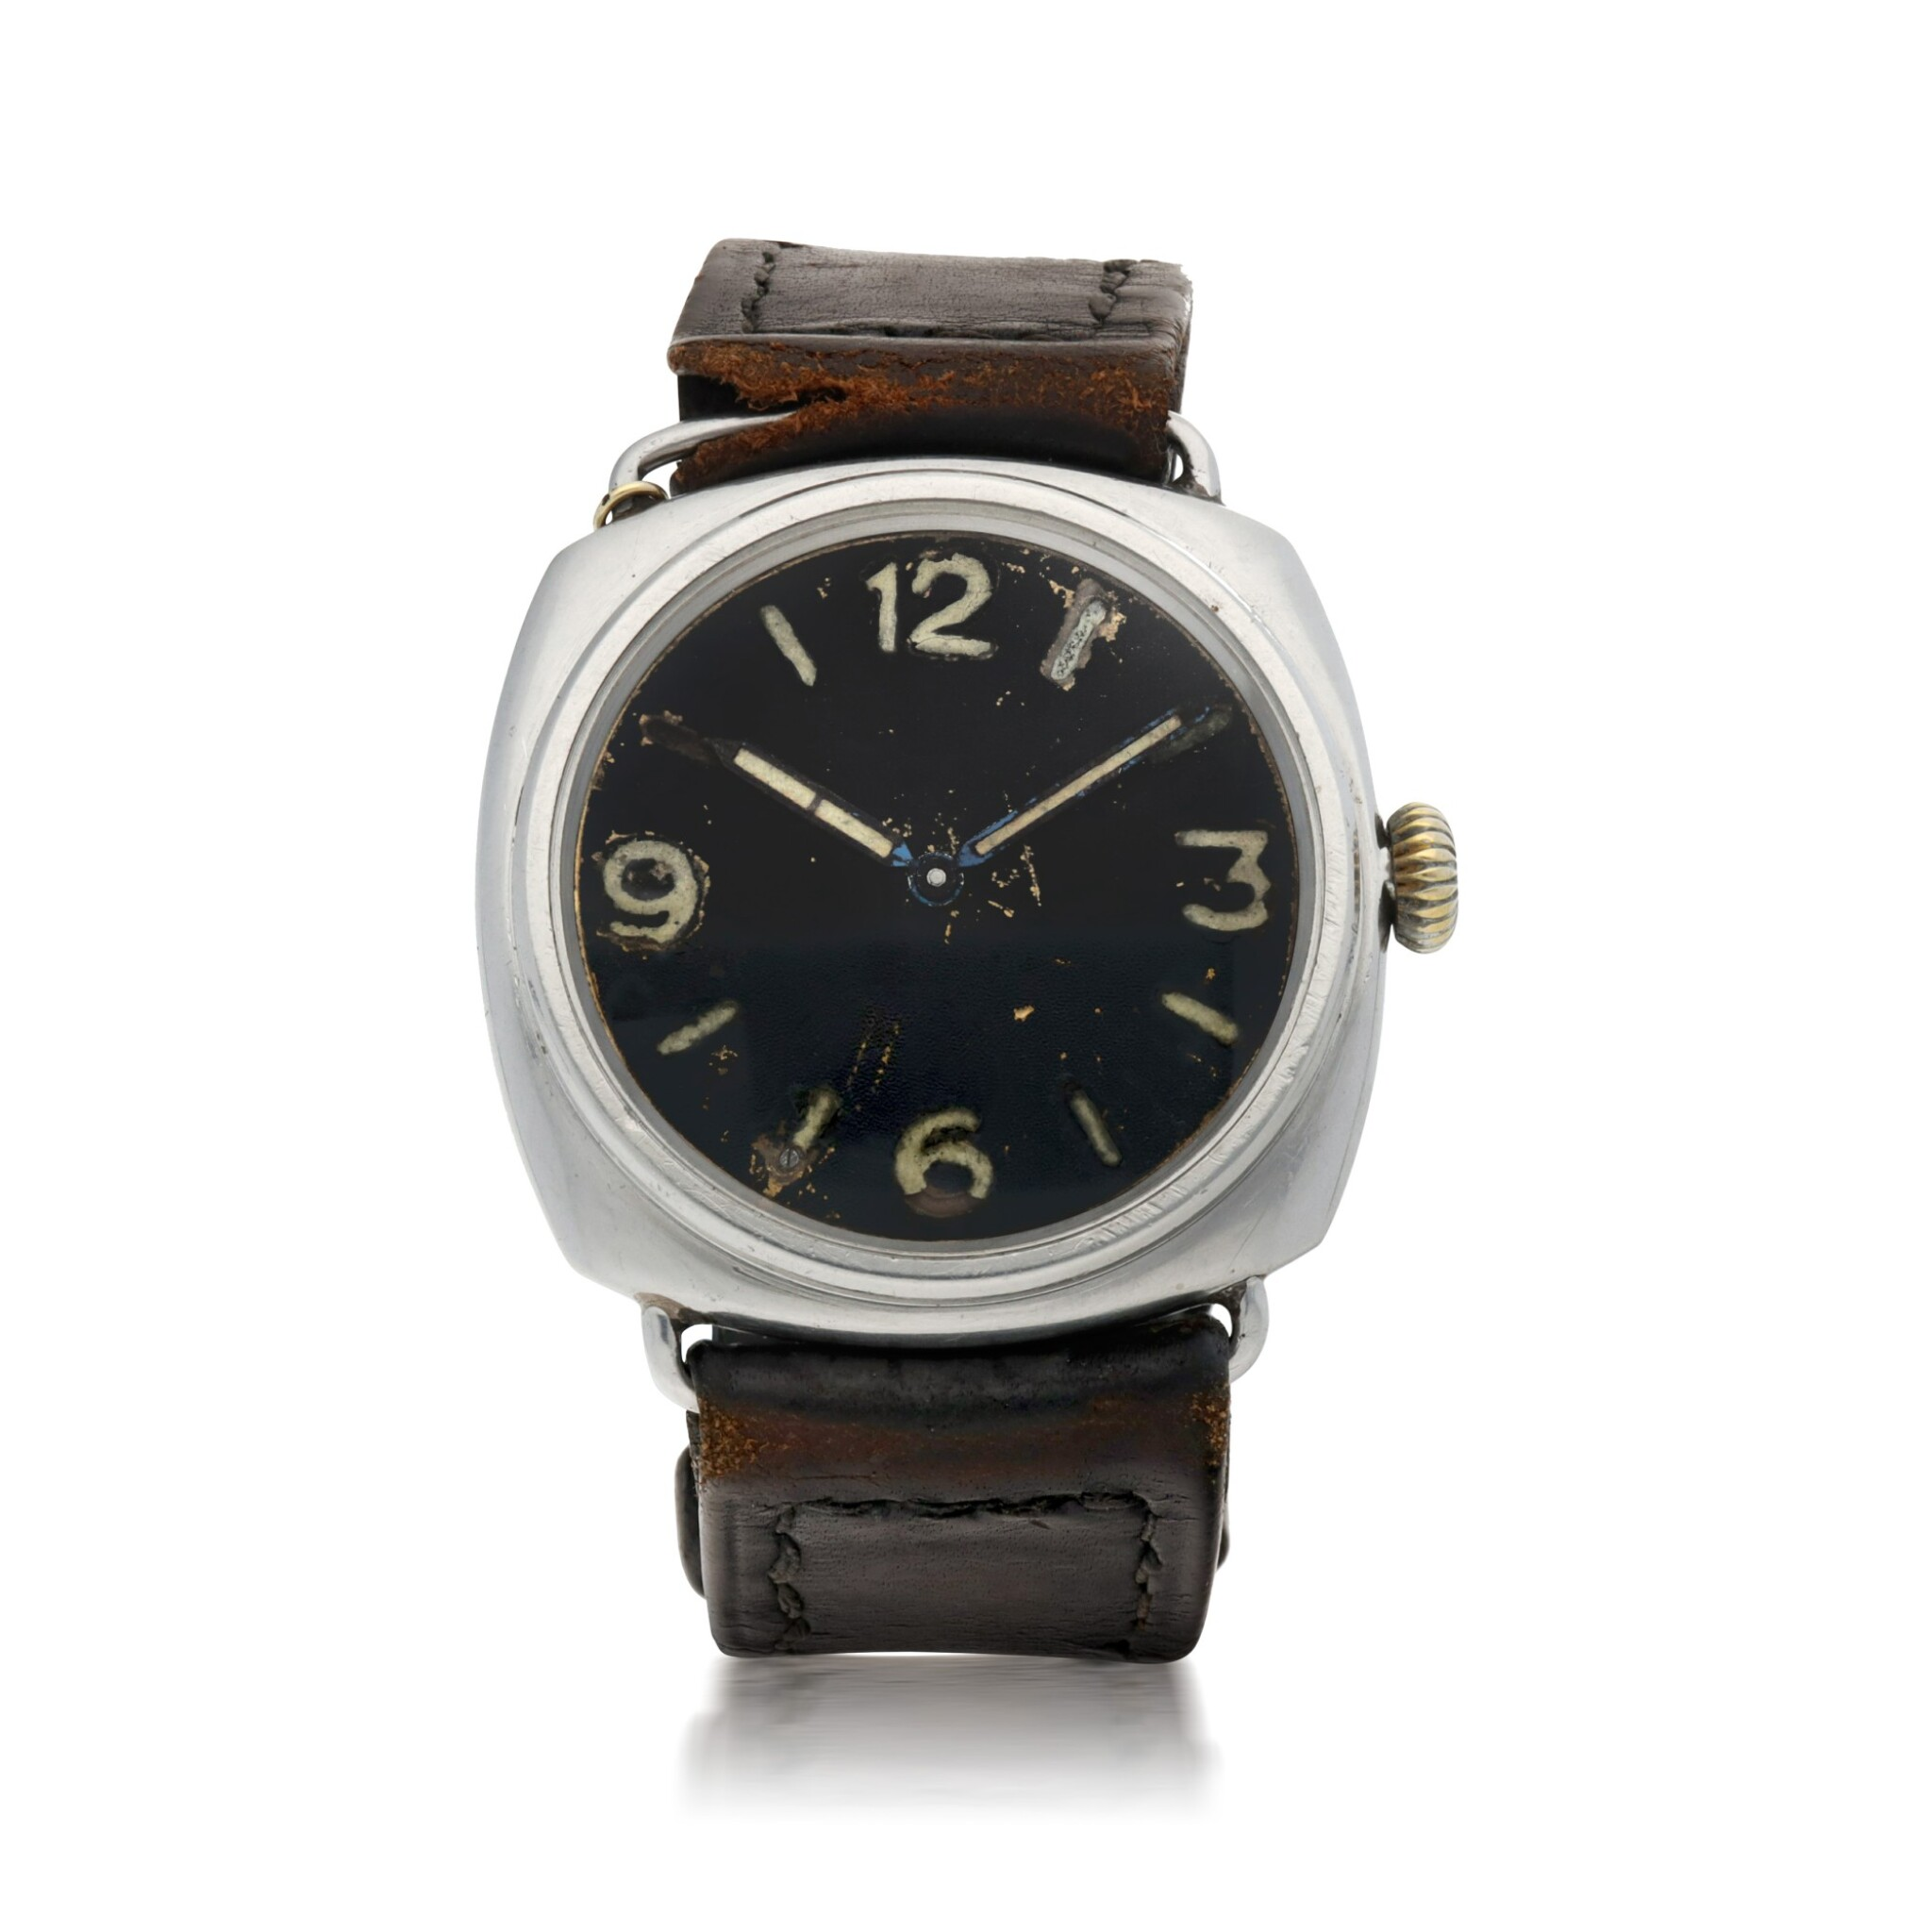 View full screen - View 1 of Lot 189. RADIOMIR, REF 3646 STAINLESS STEEL MILITARY DIVERS' WATCH CIRCA 1940.